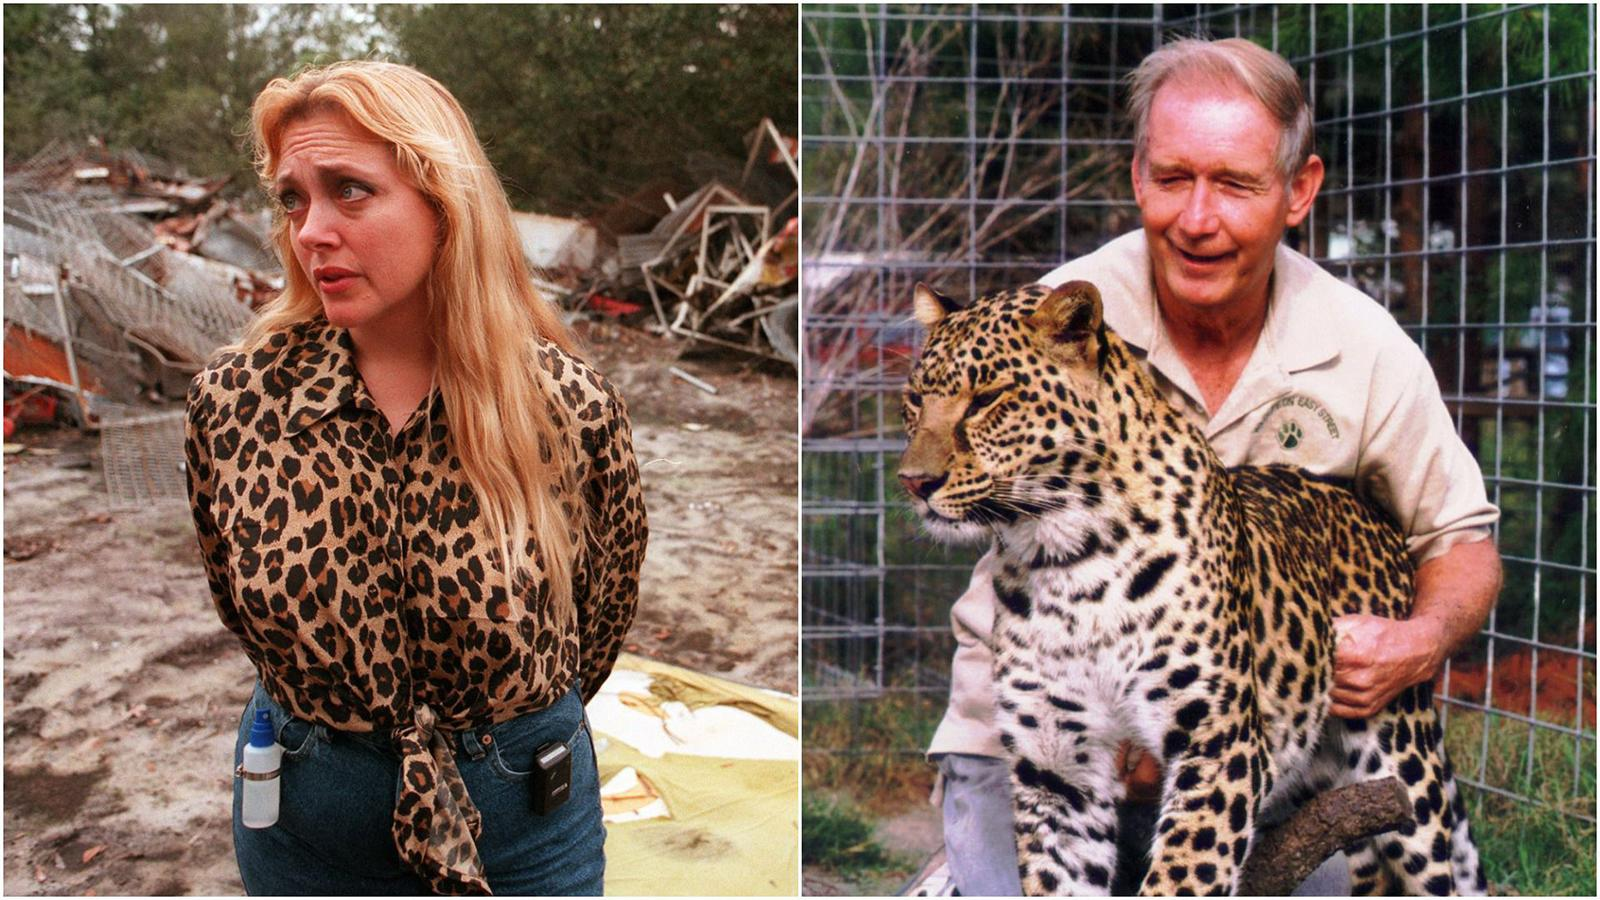 Family Of Don Lewis Missing Ex Husband Of Tiger King Star Carole Baskin Launches Investigation